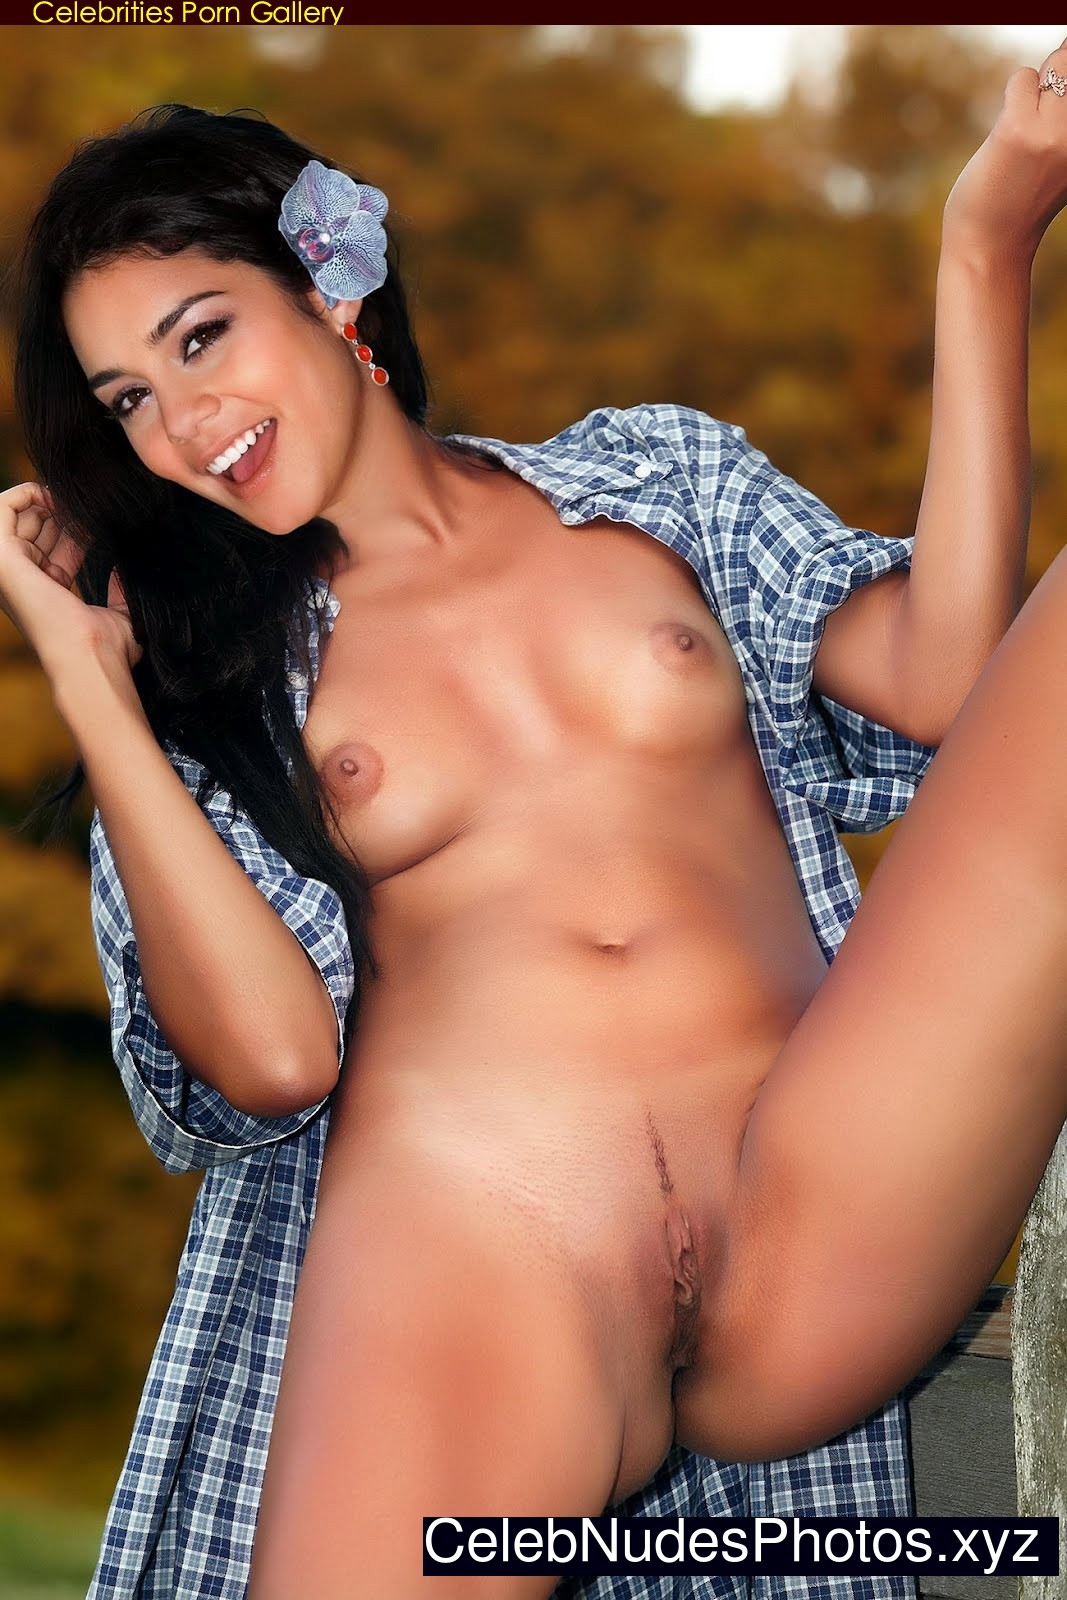 Rather Vannessa hudgins naked picture remarkable, rather